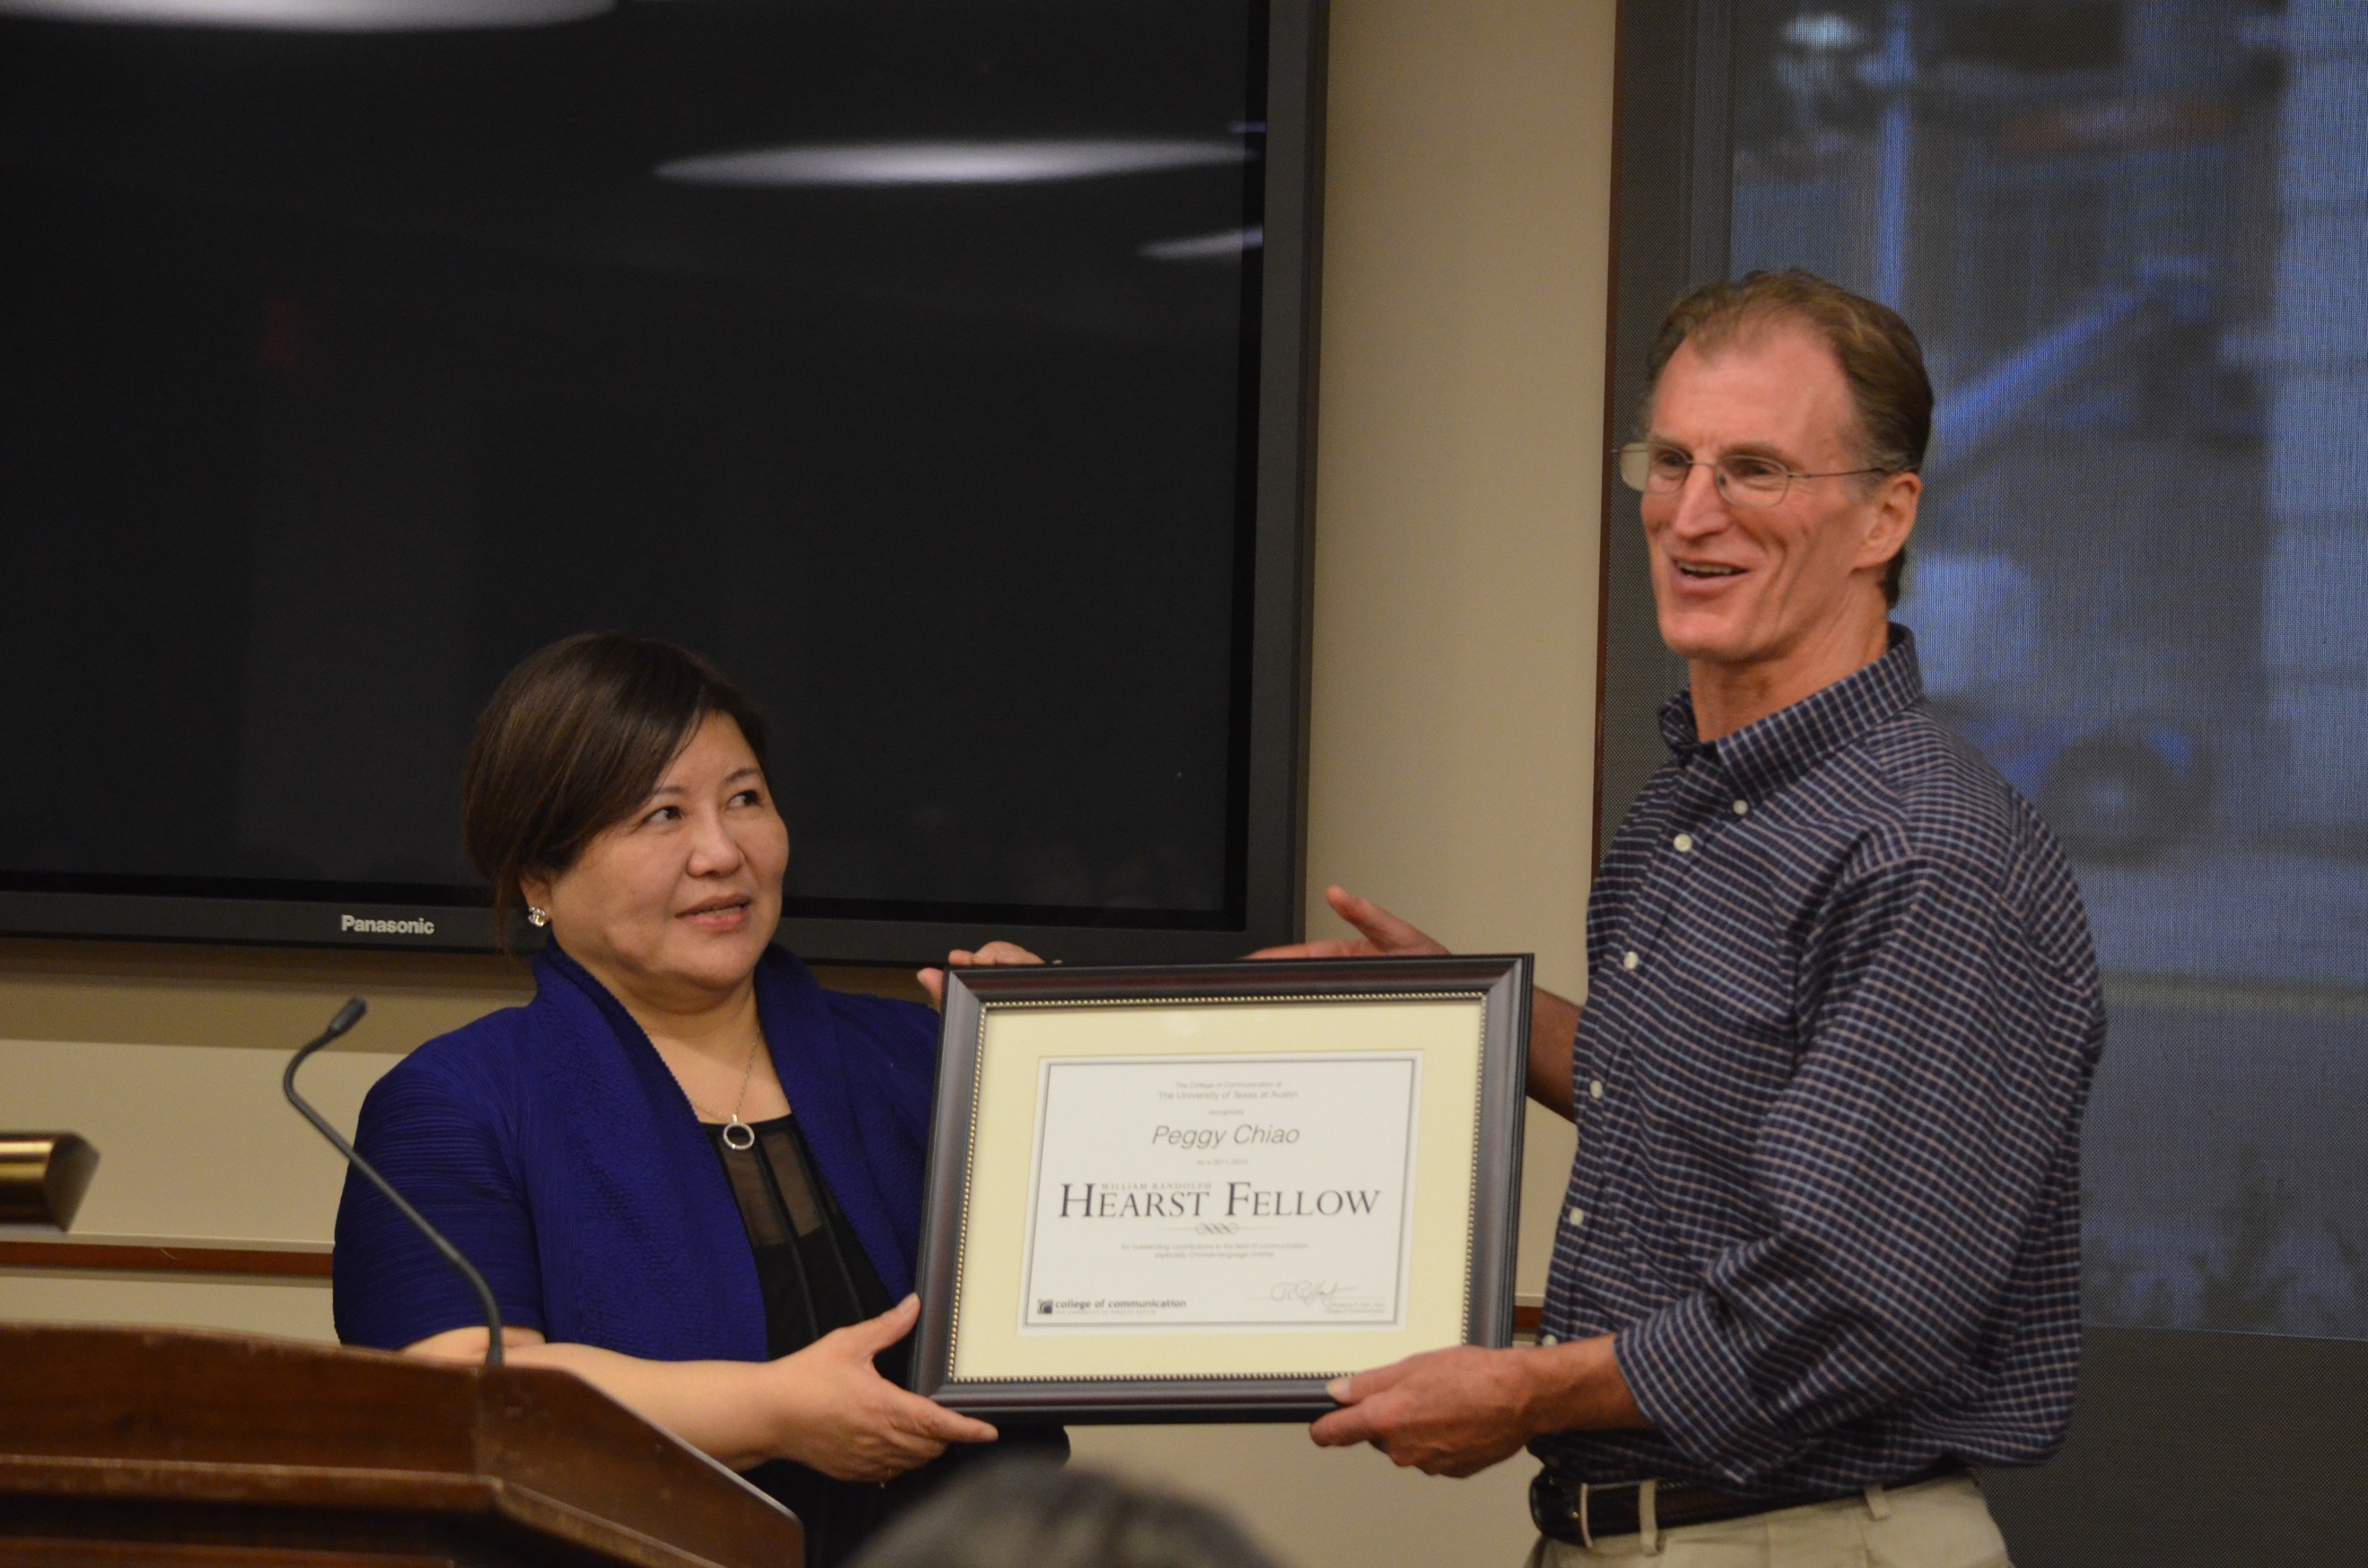 Film producer and critic Peggy Hsiung-ping Chiao received the UT College of Communication's 2011-12 William Randolph Hearst Fellow Award from Professor Thomas Schatz from UT'sRadio-TV-Film Department on November 11, 2011.